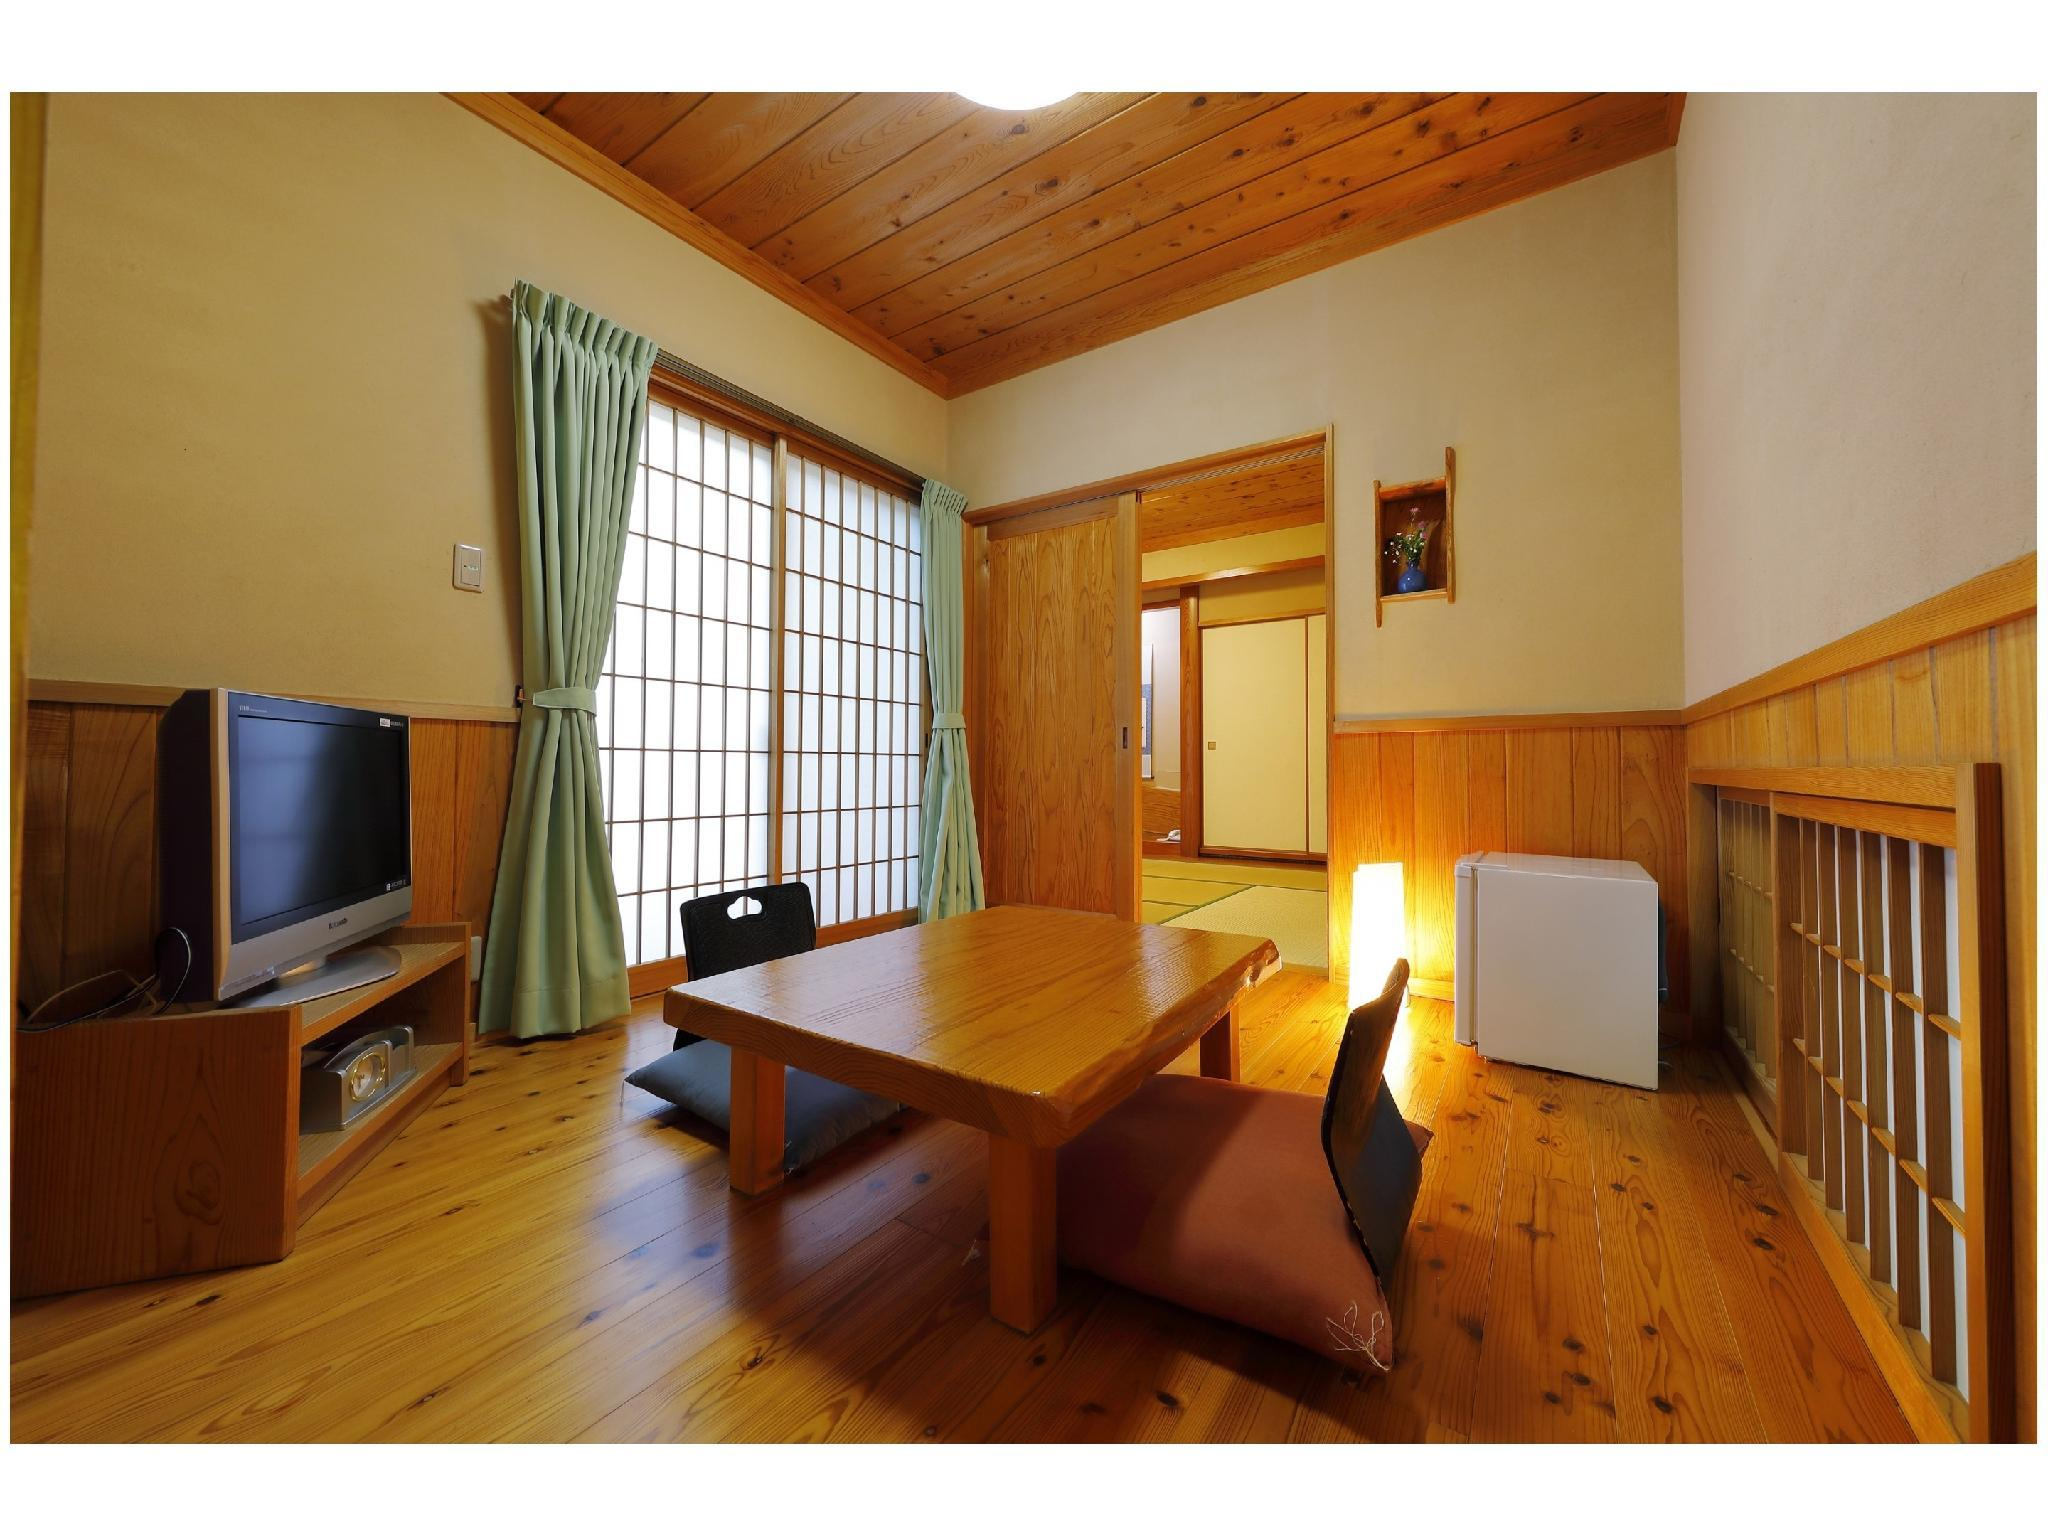 다다미 객실(아넥스) (Detached Japanese-style Room (Barrier Free Room, New Building))